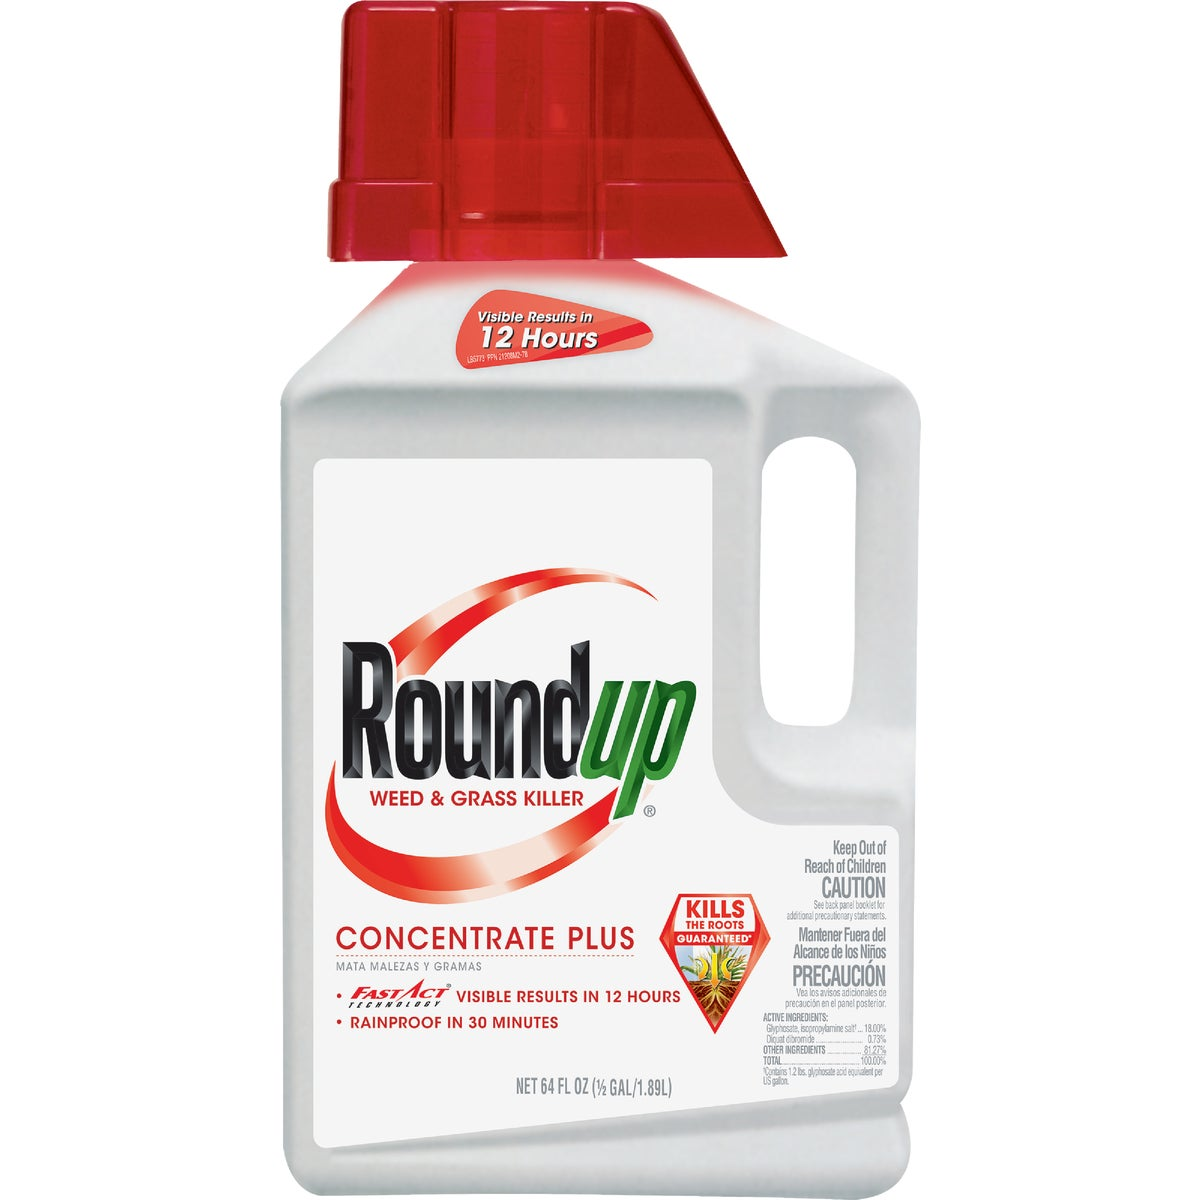 1/2GAL CONC PLUS ROUNDUP - 5006010 by Scotts Company